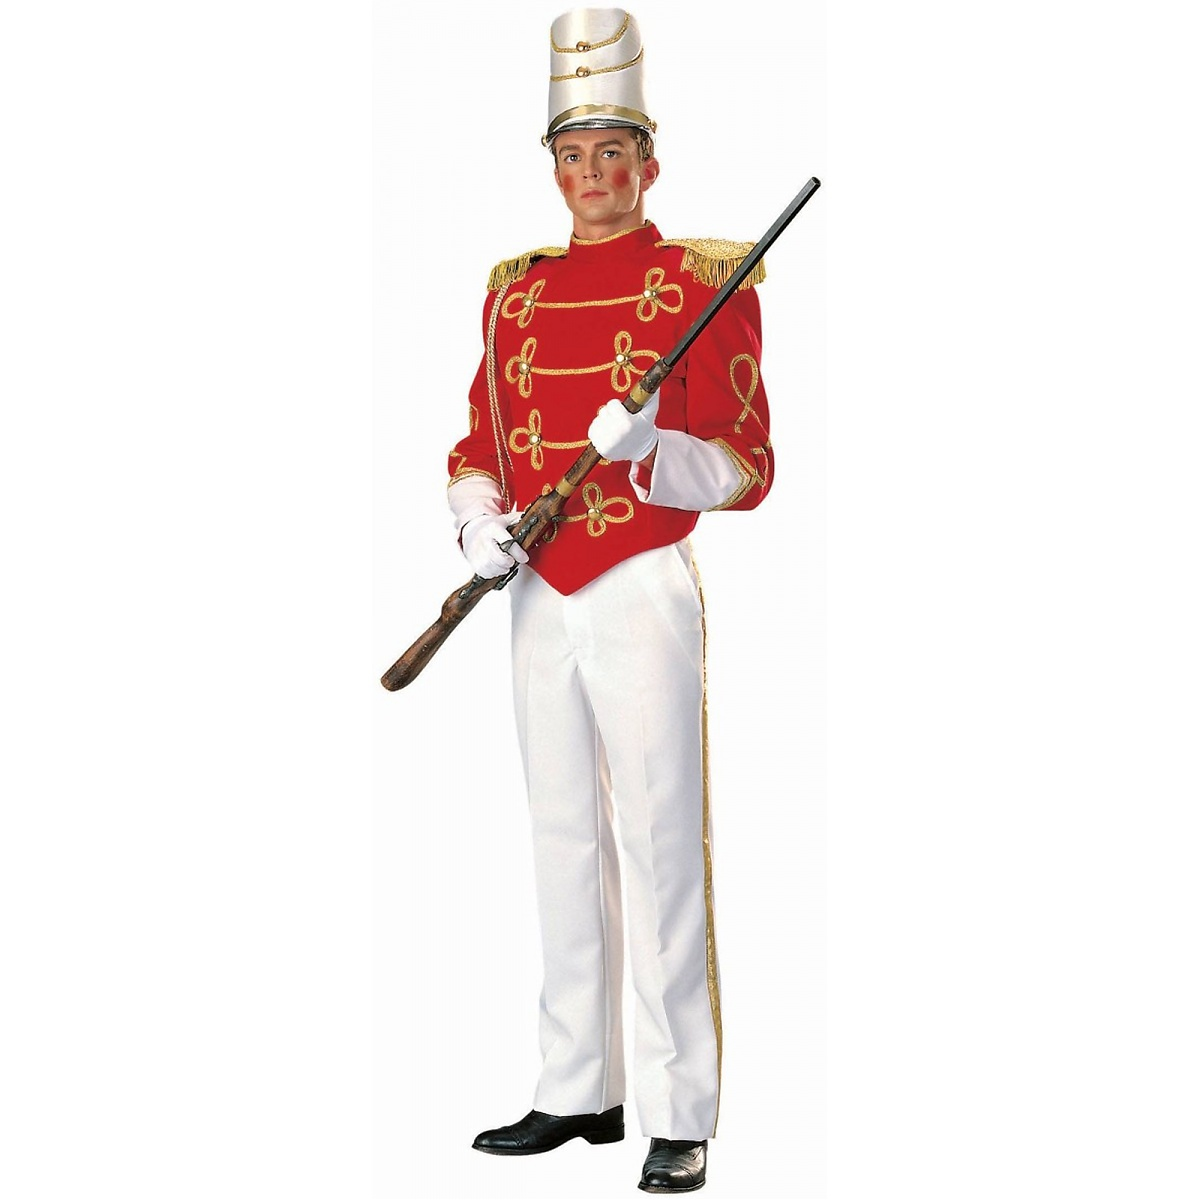 Rubie's Costume Co Dlx Toy Soldier Costume Adult Men Santa Claus Helper Nutcracker Ballet Christmas at Sears.com